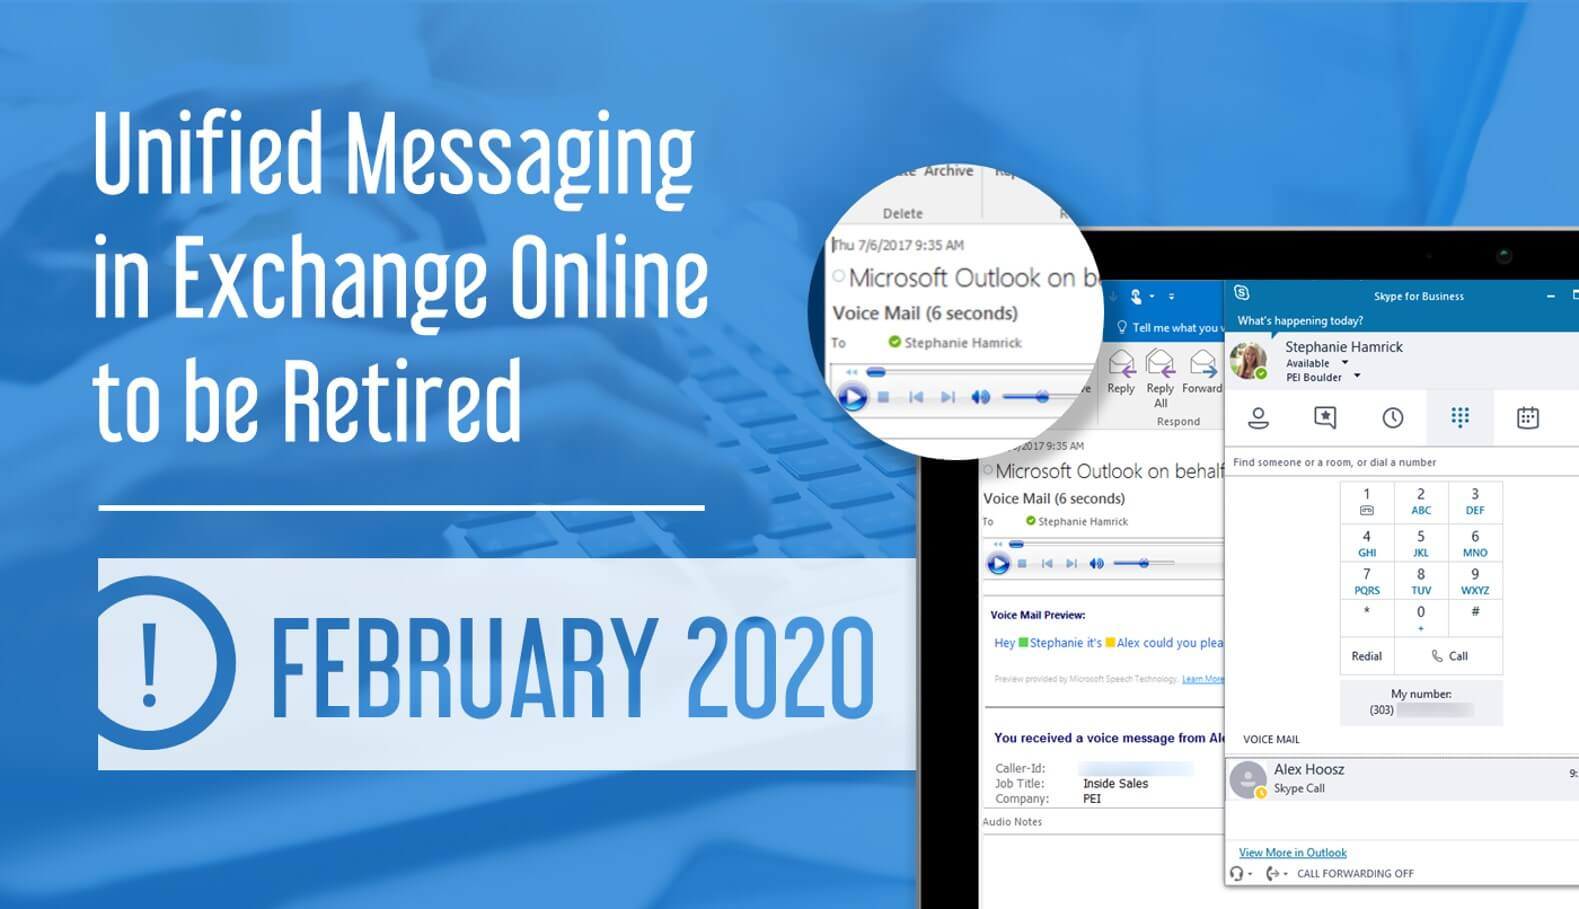 Exchange online Unified Messaging Retired February 2020 announcement